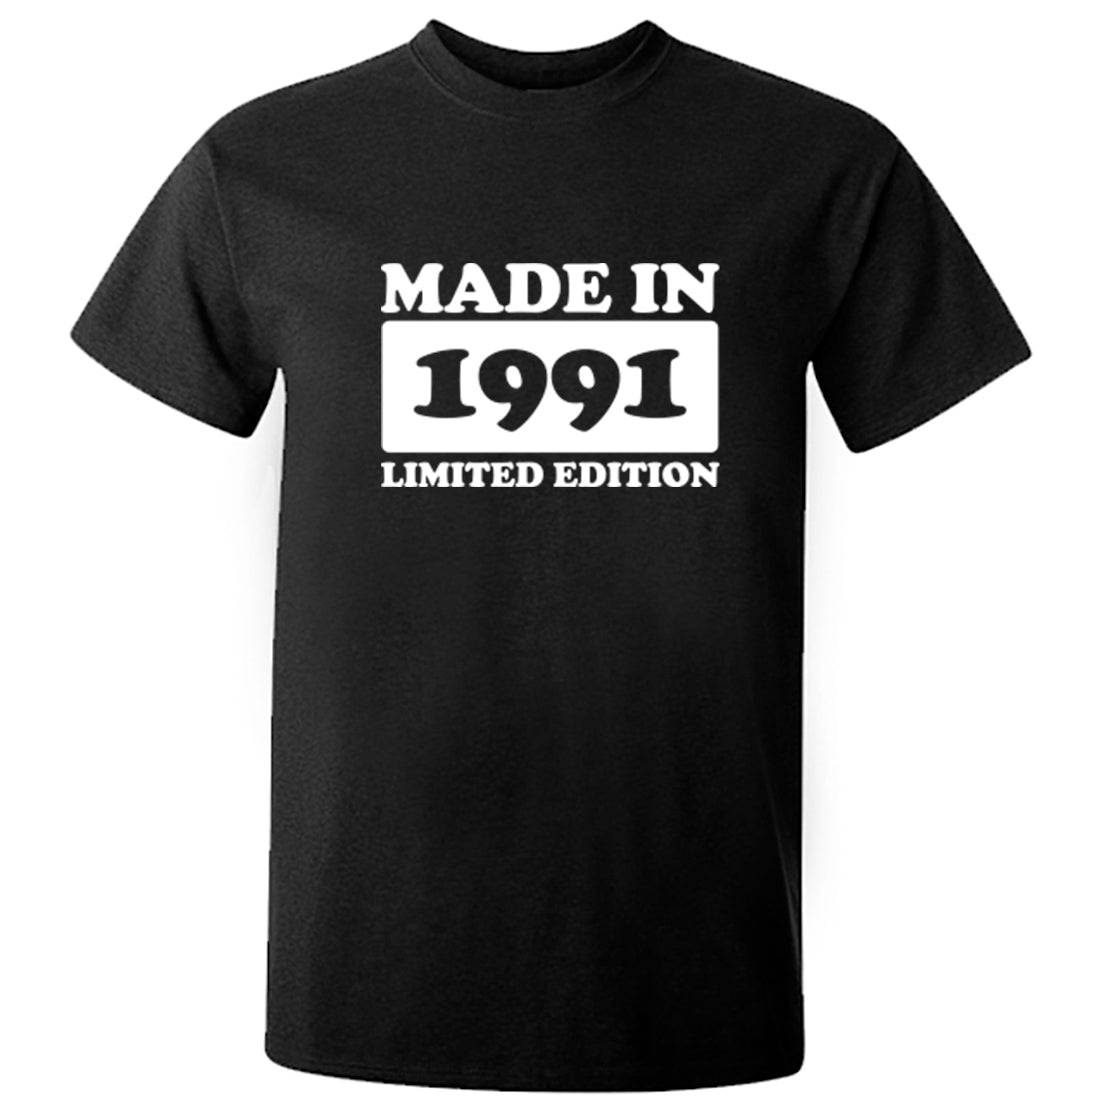 Made In 1991 Limited Edition Unisex Fit T-Shirt K1948 - Illustrated Identity Ltd.